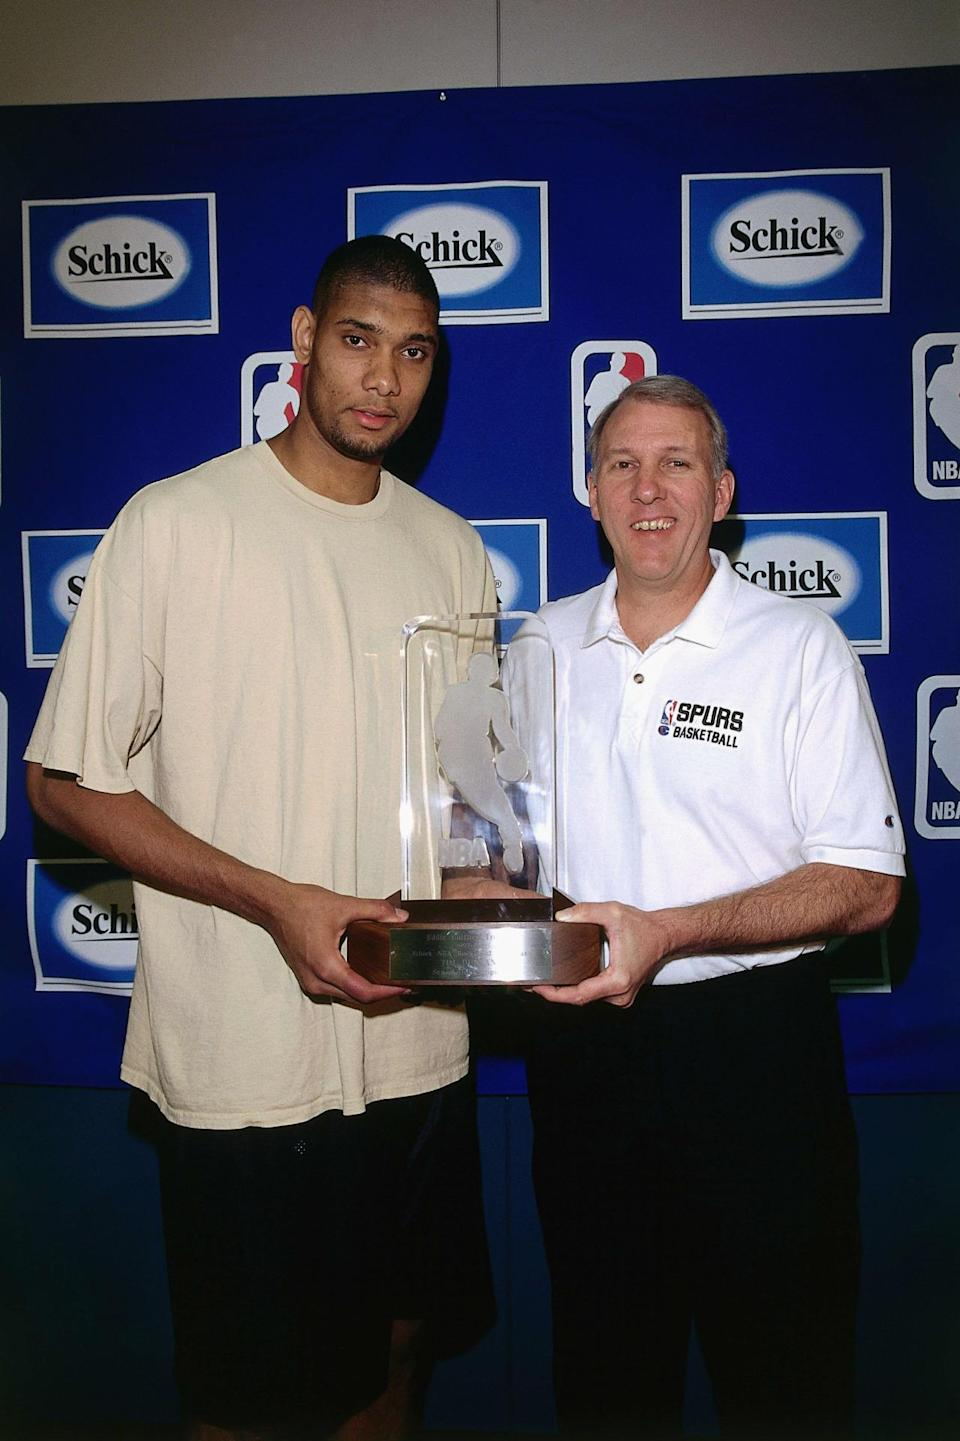 <p>1998: Tim Duncan #21 of the San Antonio Spurs poses for a portrait with Gregg Popovich during the Rookie of the Year press conference on April 27, 1998 in San Antonio, Texas.<br></p>